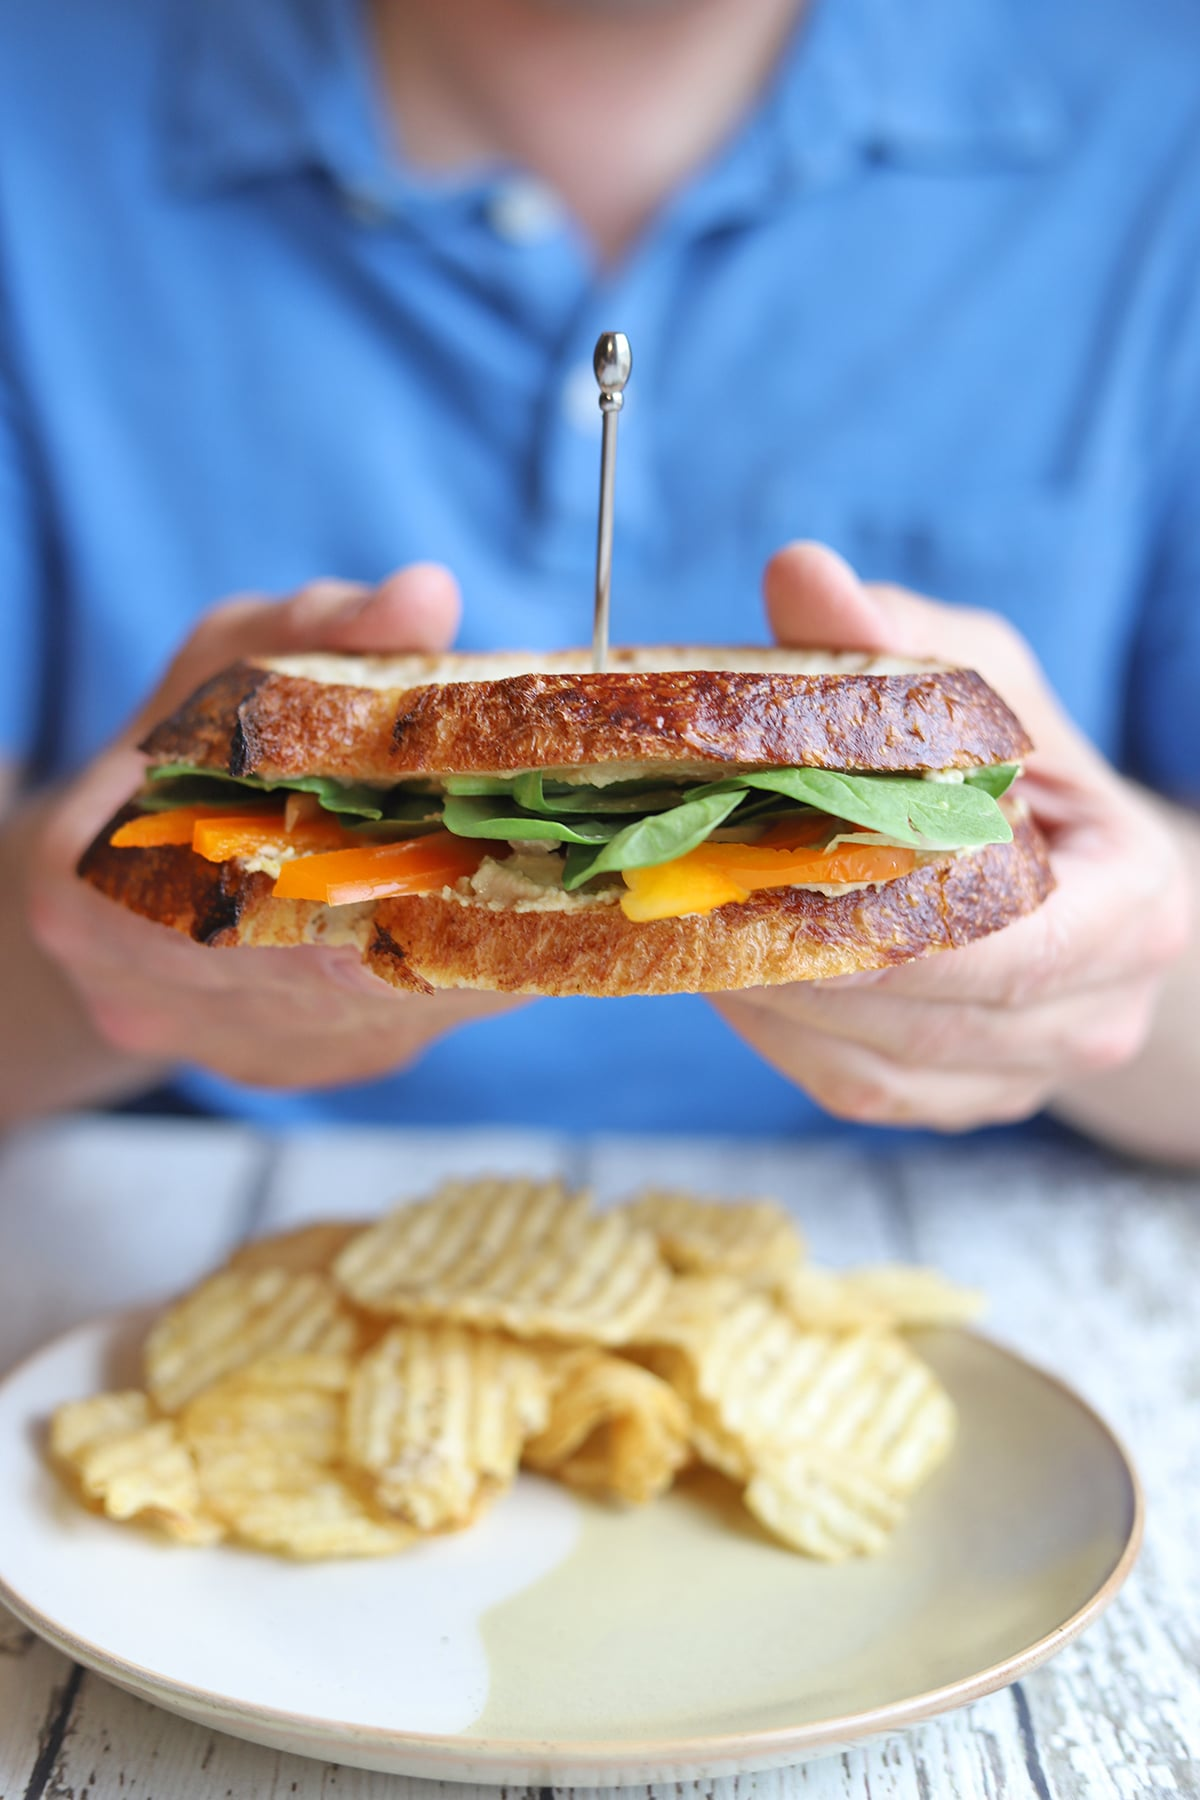 Hands holding vegetable sandwich over plate.